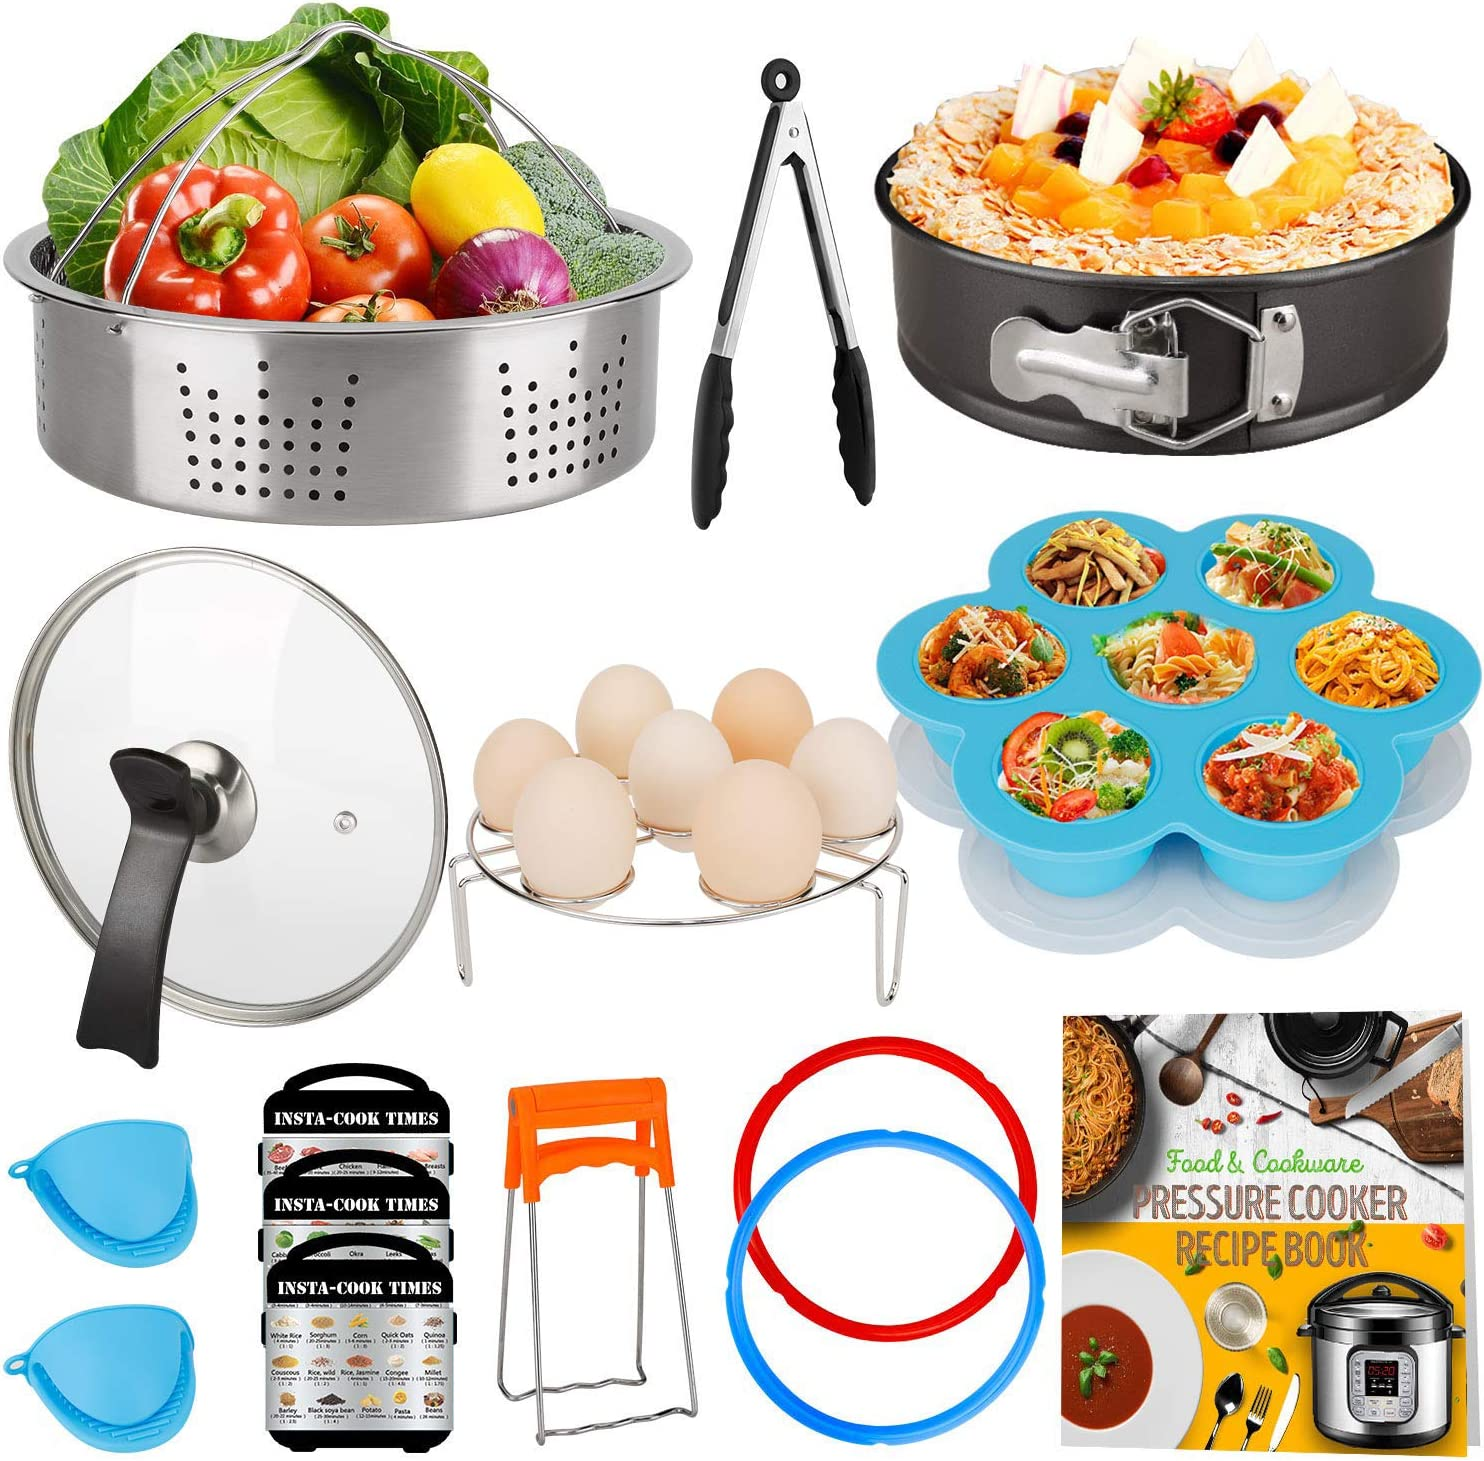 Cooking Accessories Set Compatible with Instant Pot 8 QT, 8 Quart Accessory Kit with Glass Lid Silicone Sealing Rings Steamer Basket Springform Pan Cookbook